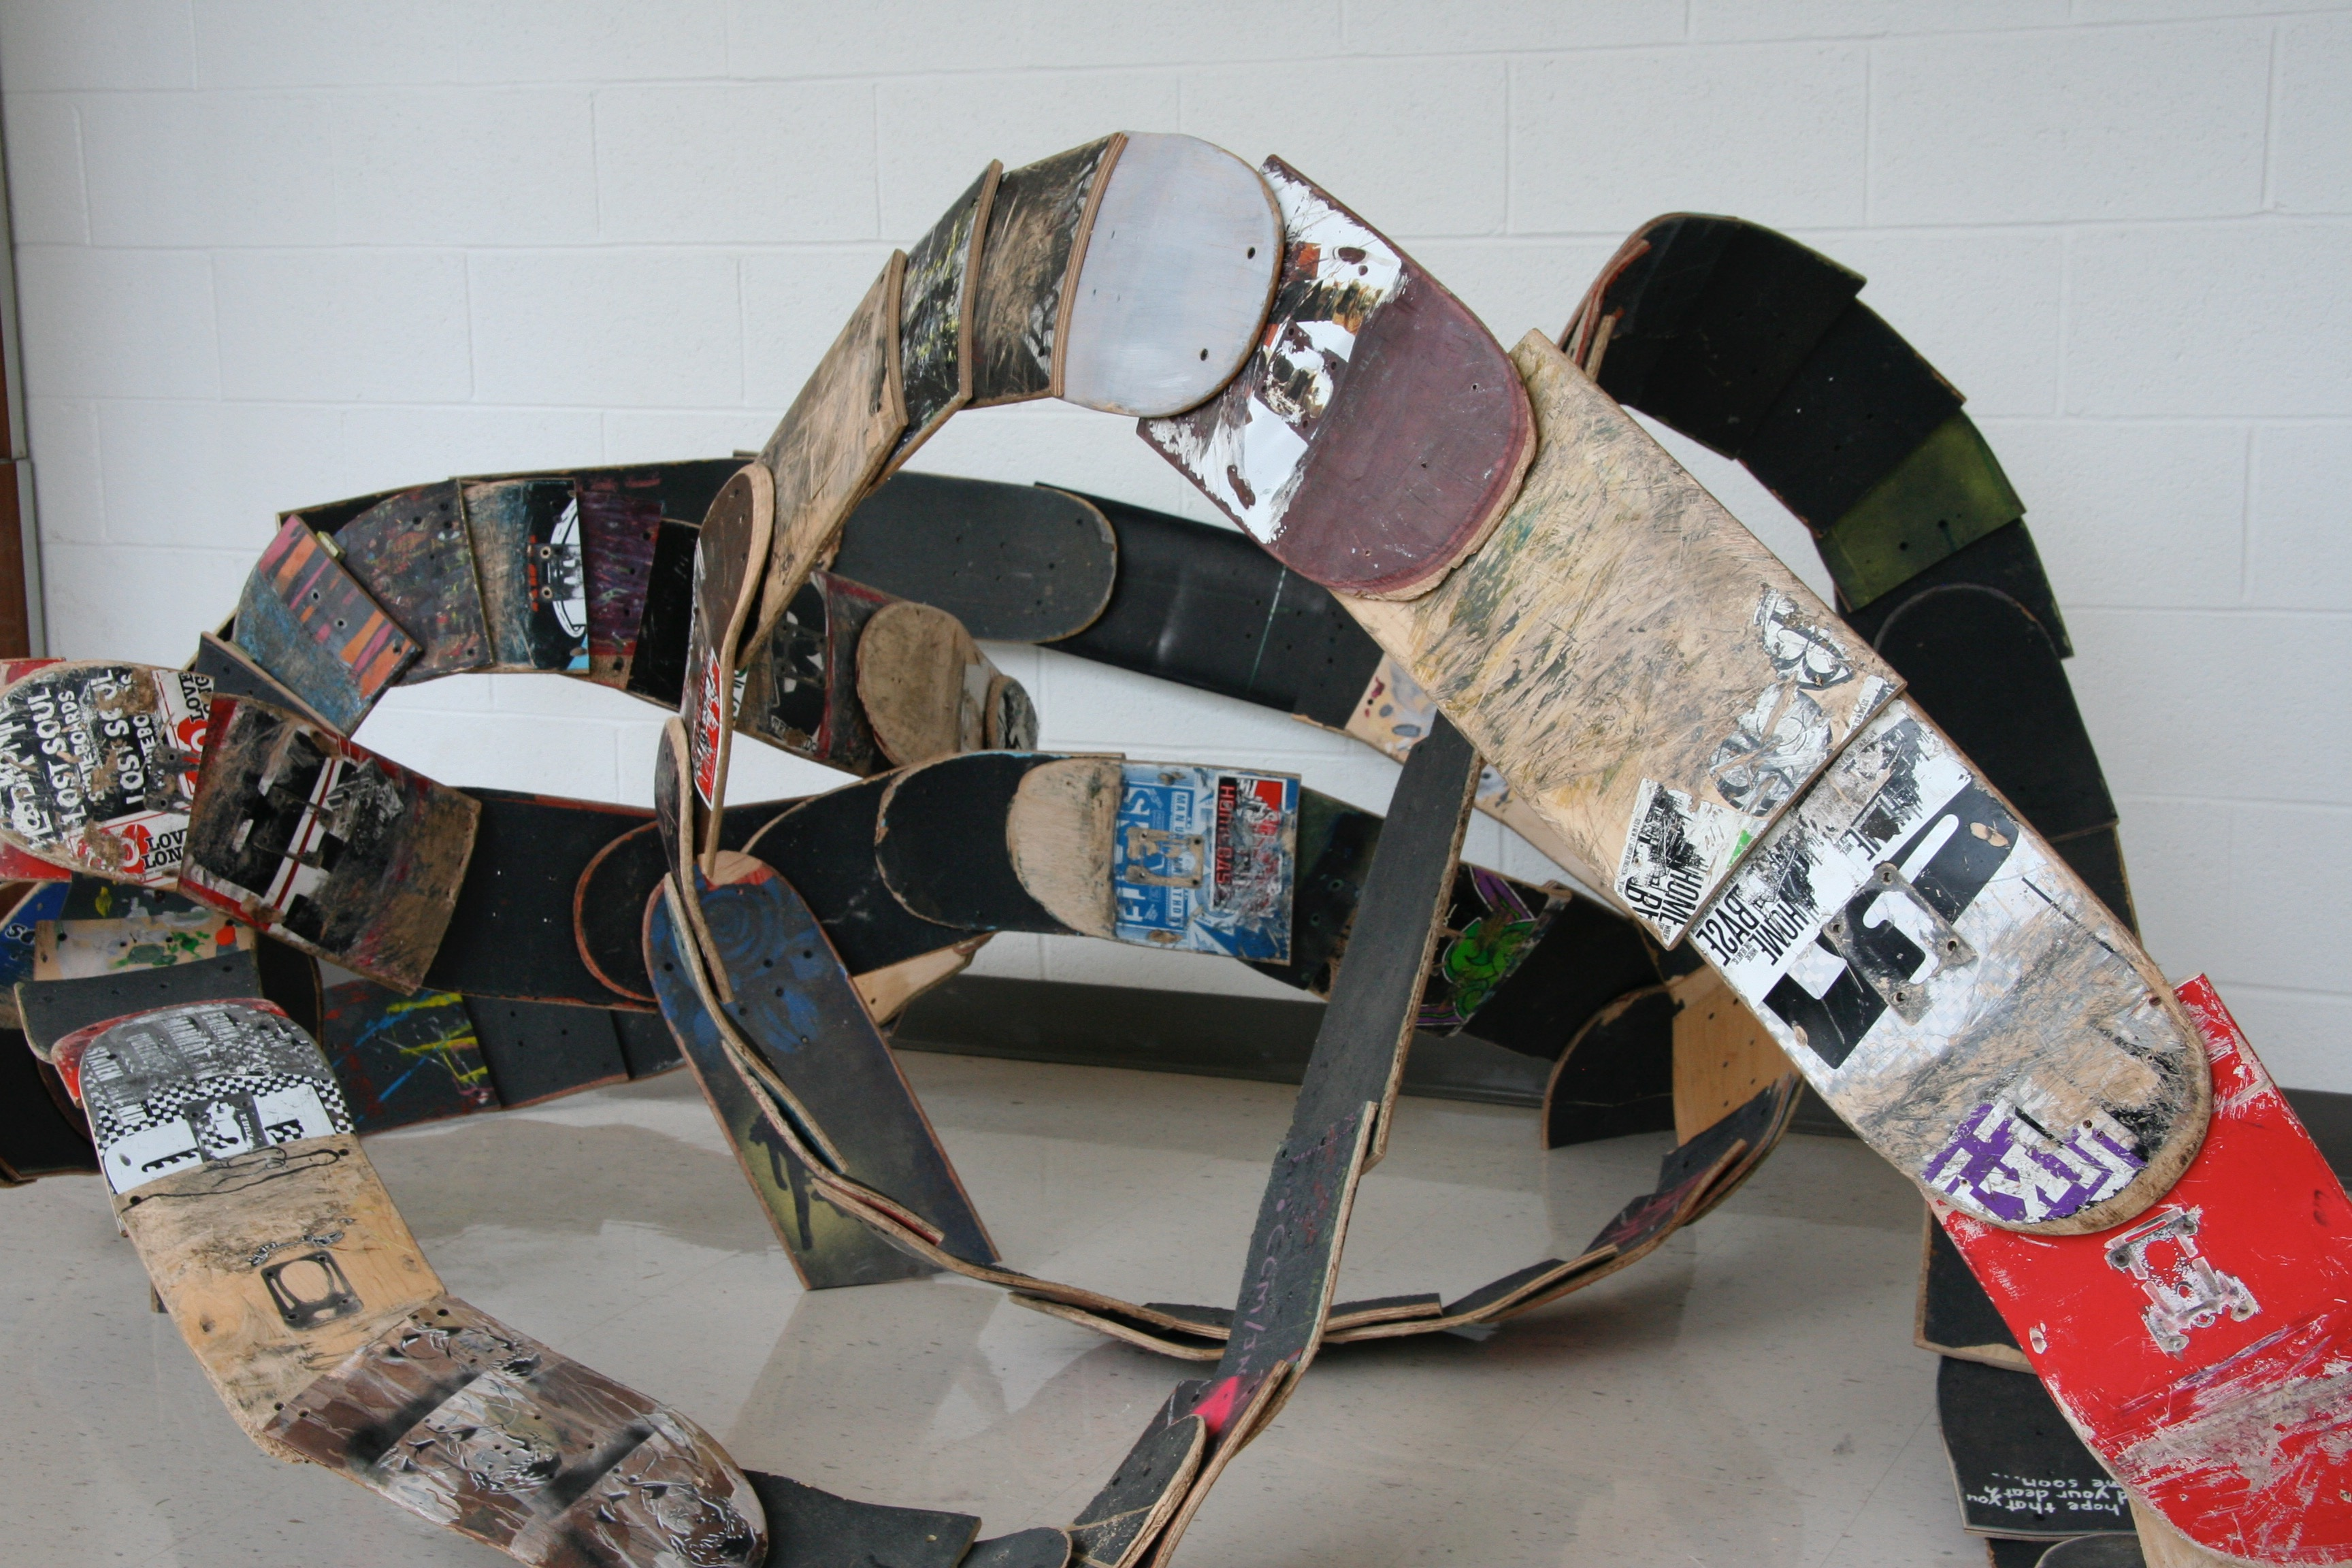 Sculpture of cut metal sheets collaged with paper